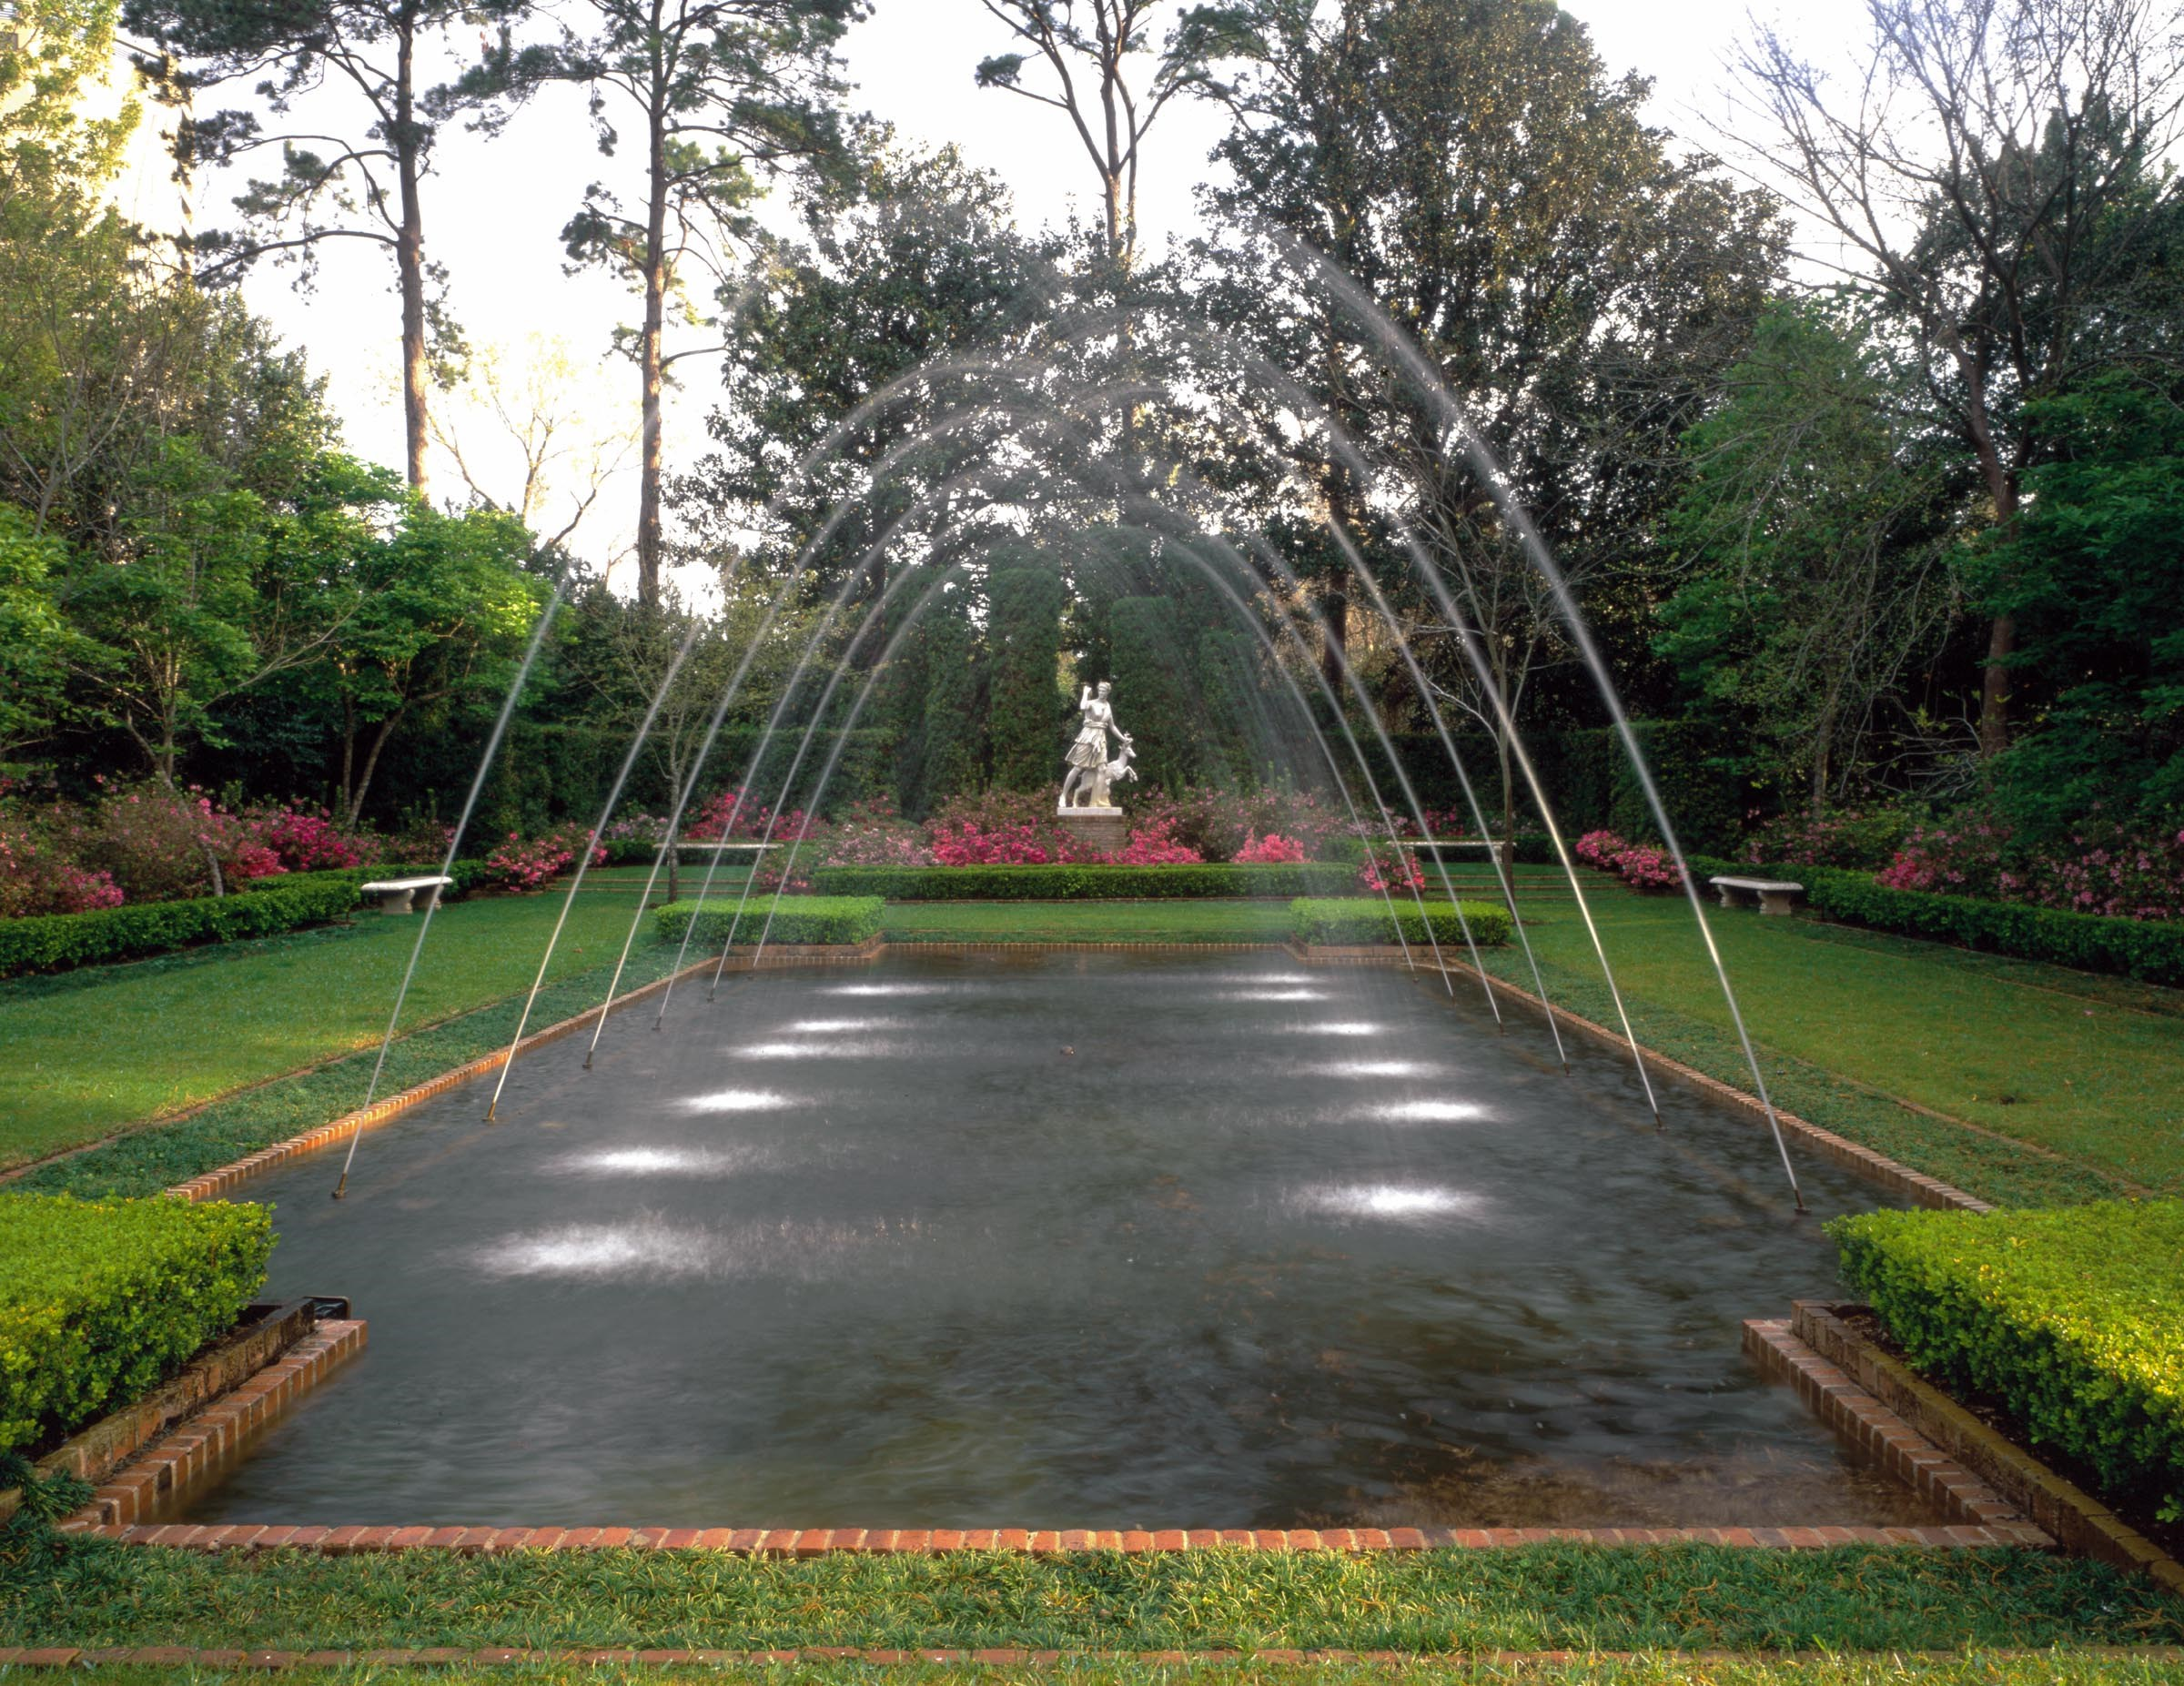 Q) Bayou Bend Was Among The First Public Formal Gardens In Texas To Use  Organic Gardening Techniques. Why Has Organic Gardening Remained Important  To Bayou ...